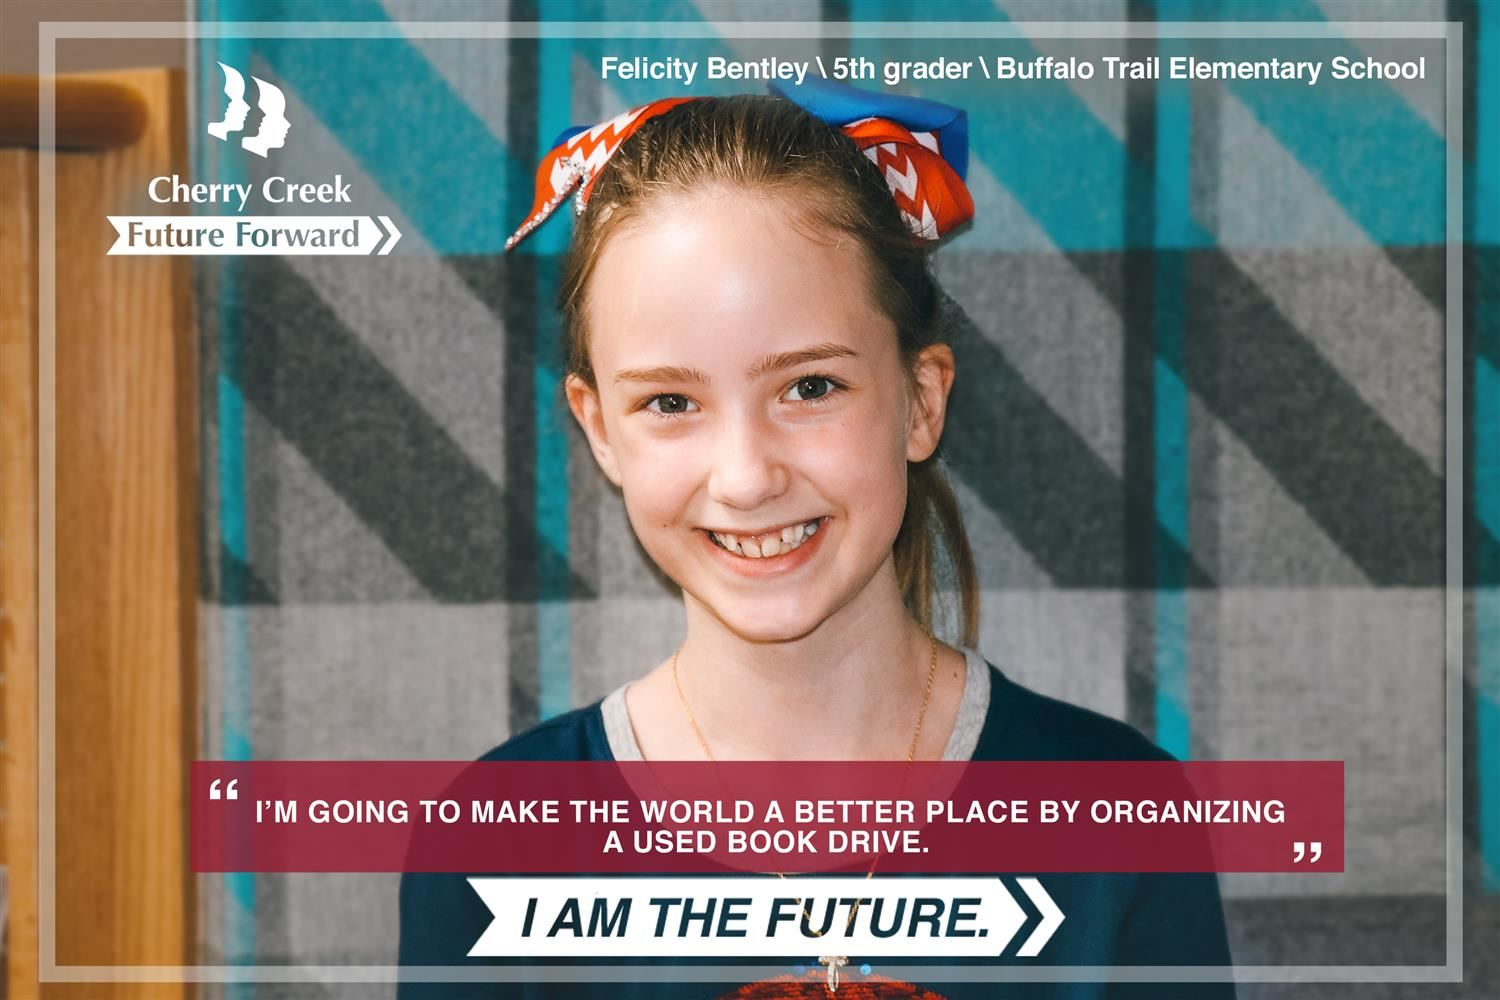 photo of Felicity Bentley, 5th Grader at Buffalo Trail Elementary School